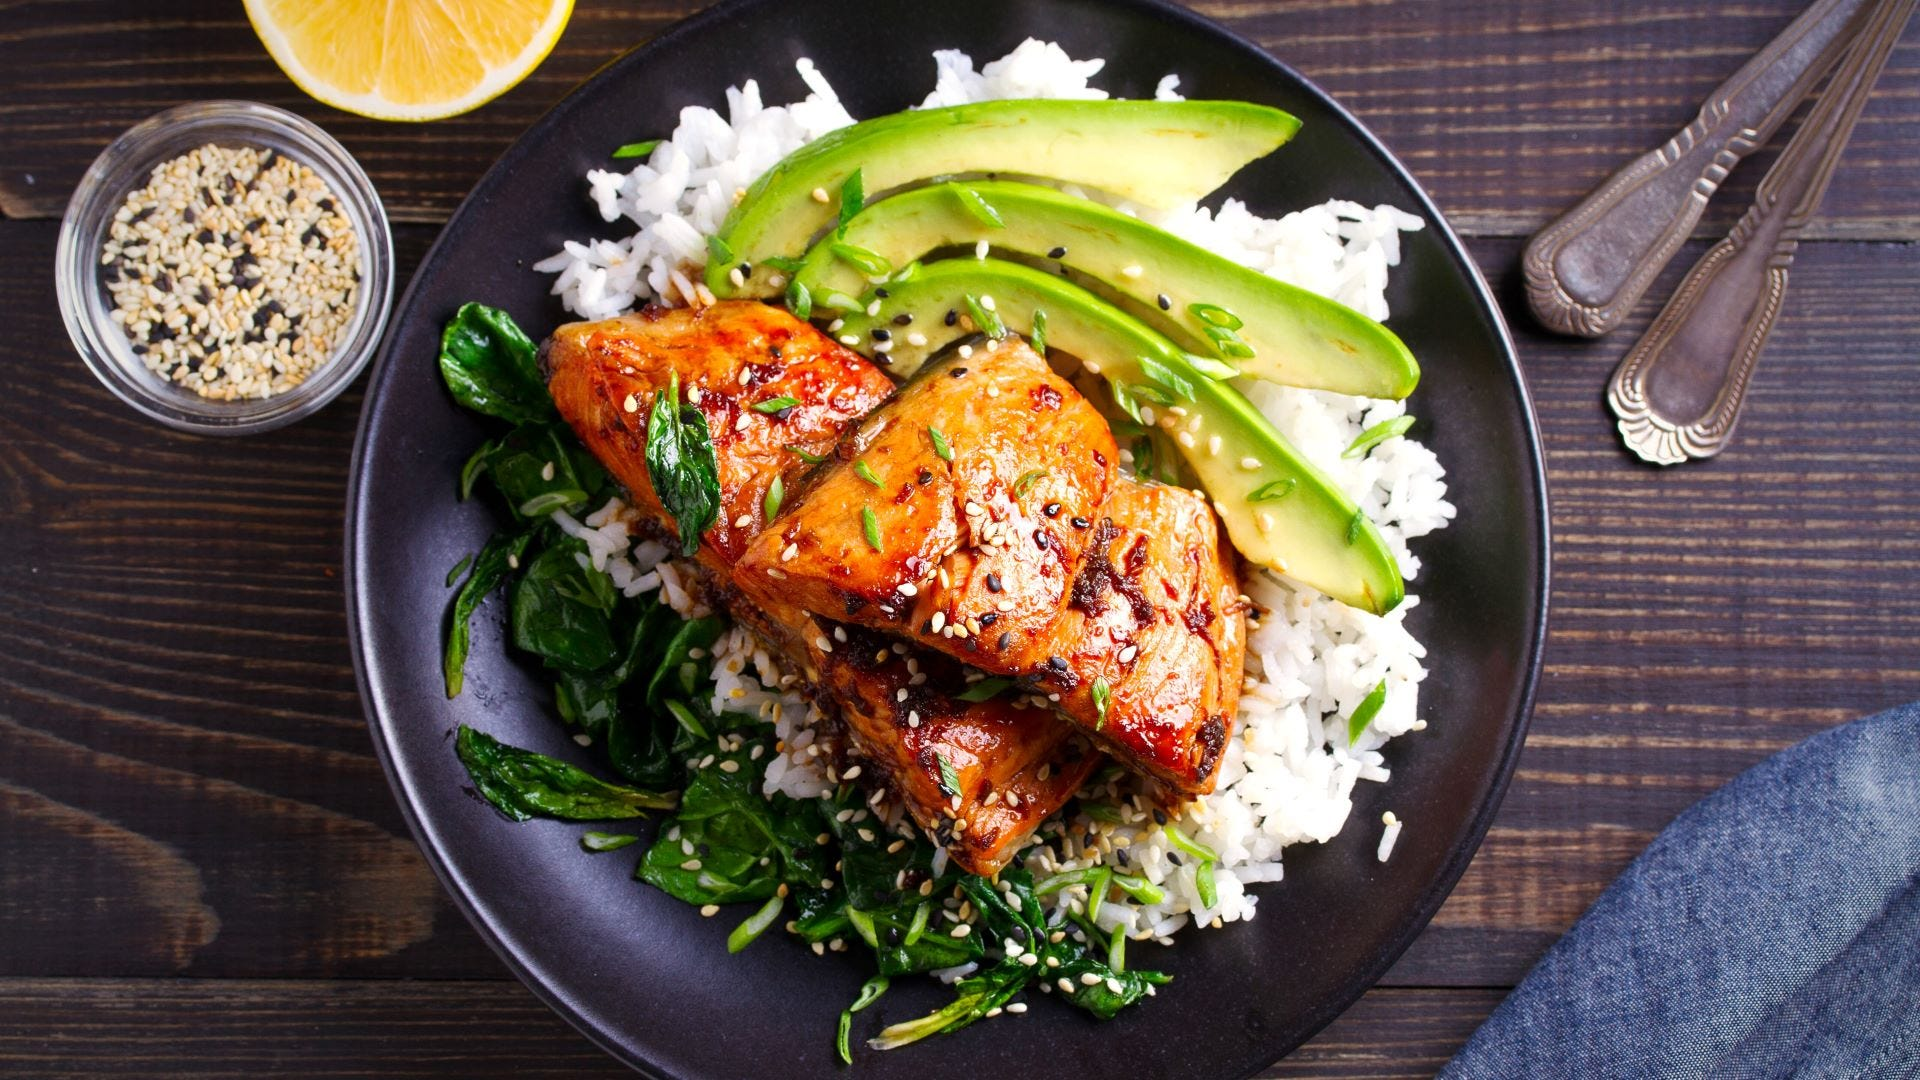 A plate of salmon in honey-soy glaze with rice, spinach, and avocado.